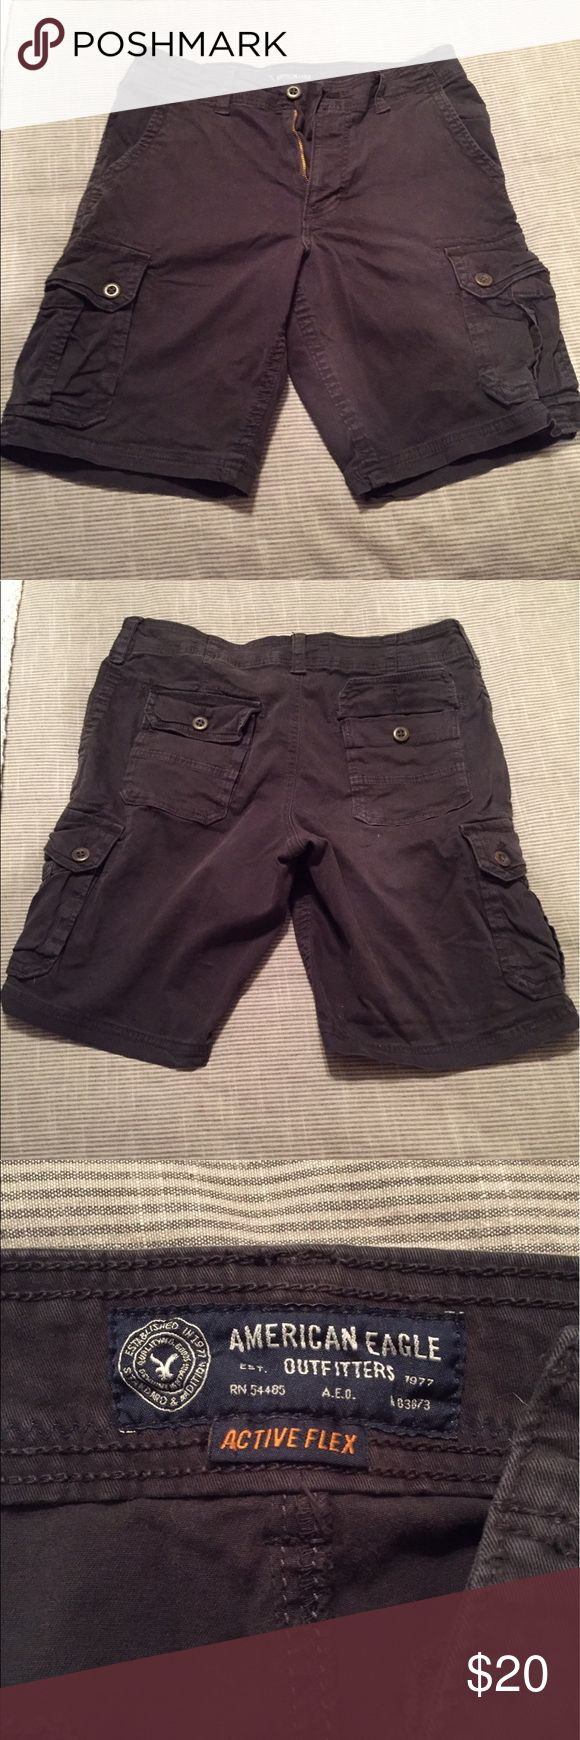 American Eagle men's Active Flex Black Shorts 33 Up for sale is a lightly used pair of men's American Eagle Active Flex shorts. These shirts are lightly used, and are a men's size 33, black in color. Very comfortable! American Eagle Outfitters Shorts Cargo